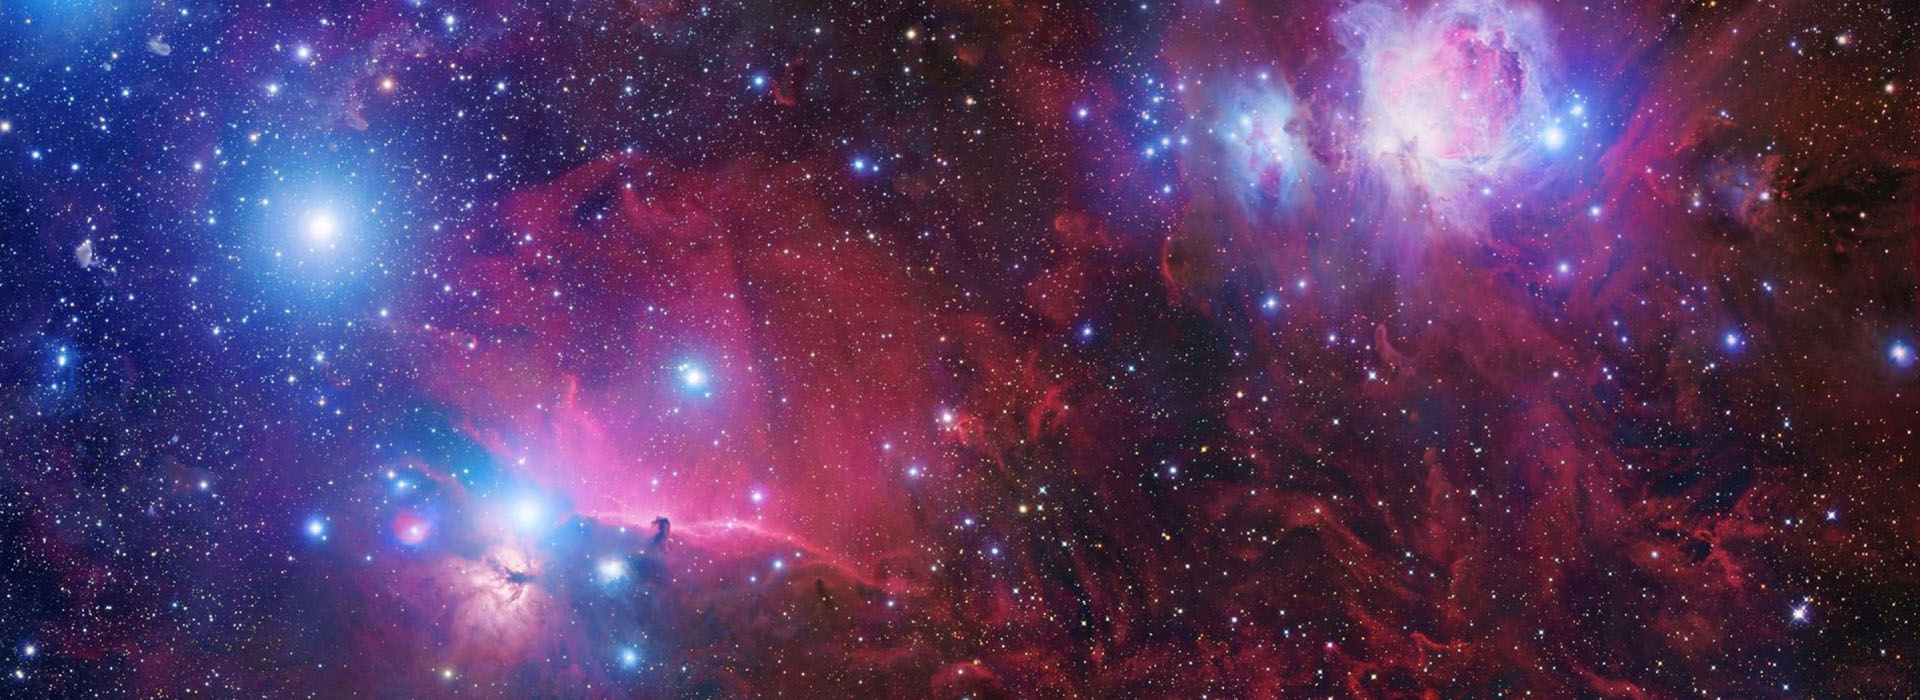 Picture of space in all the colors red and blue